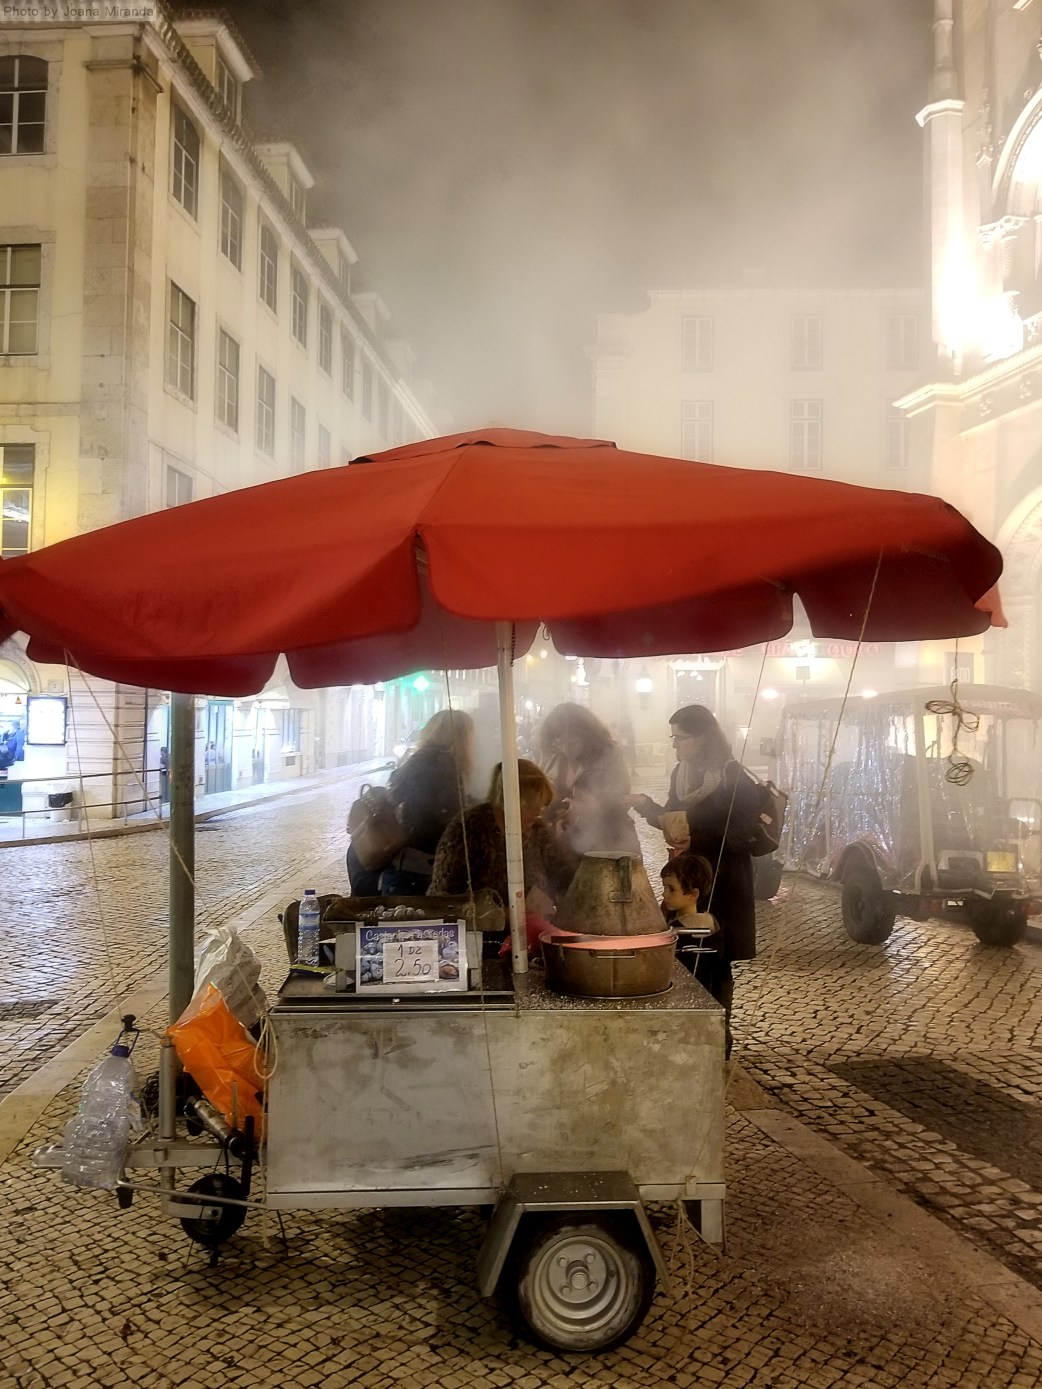 Chestnut vendo stand outside Rossio at night